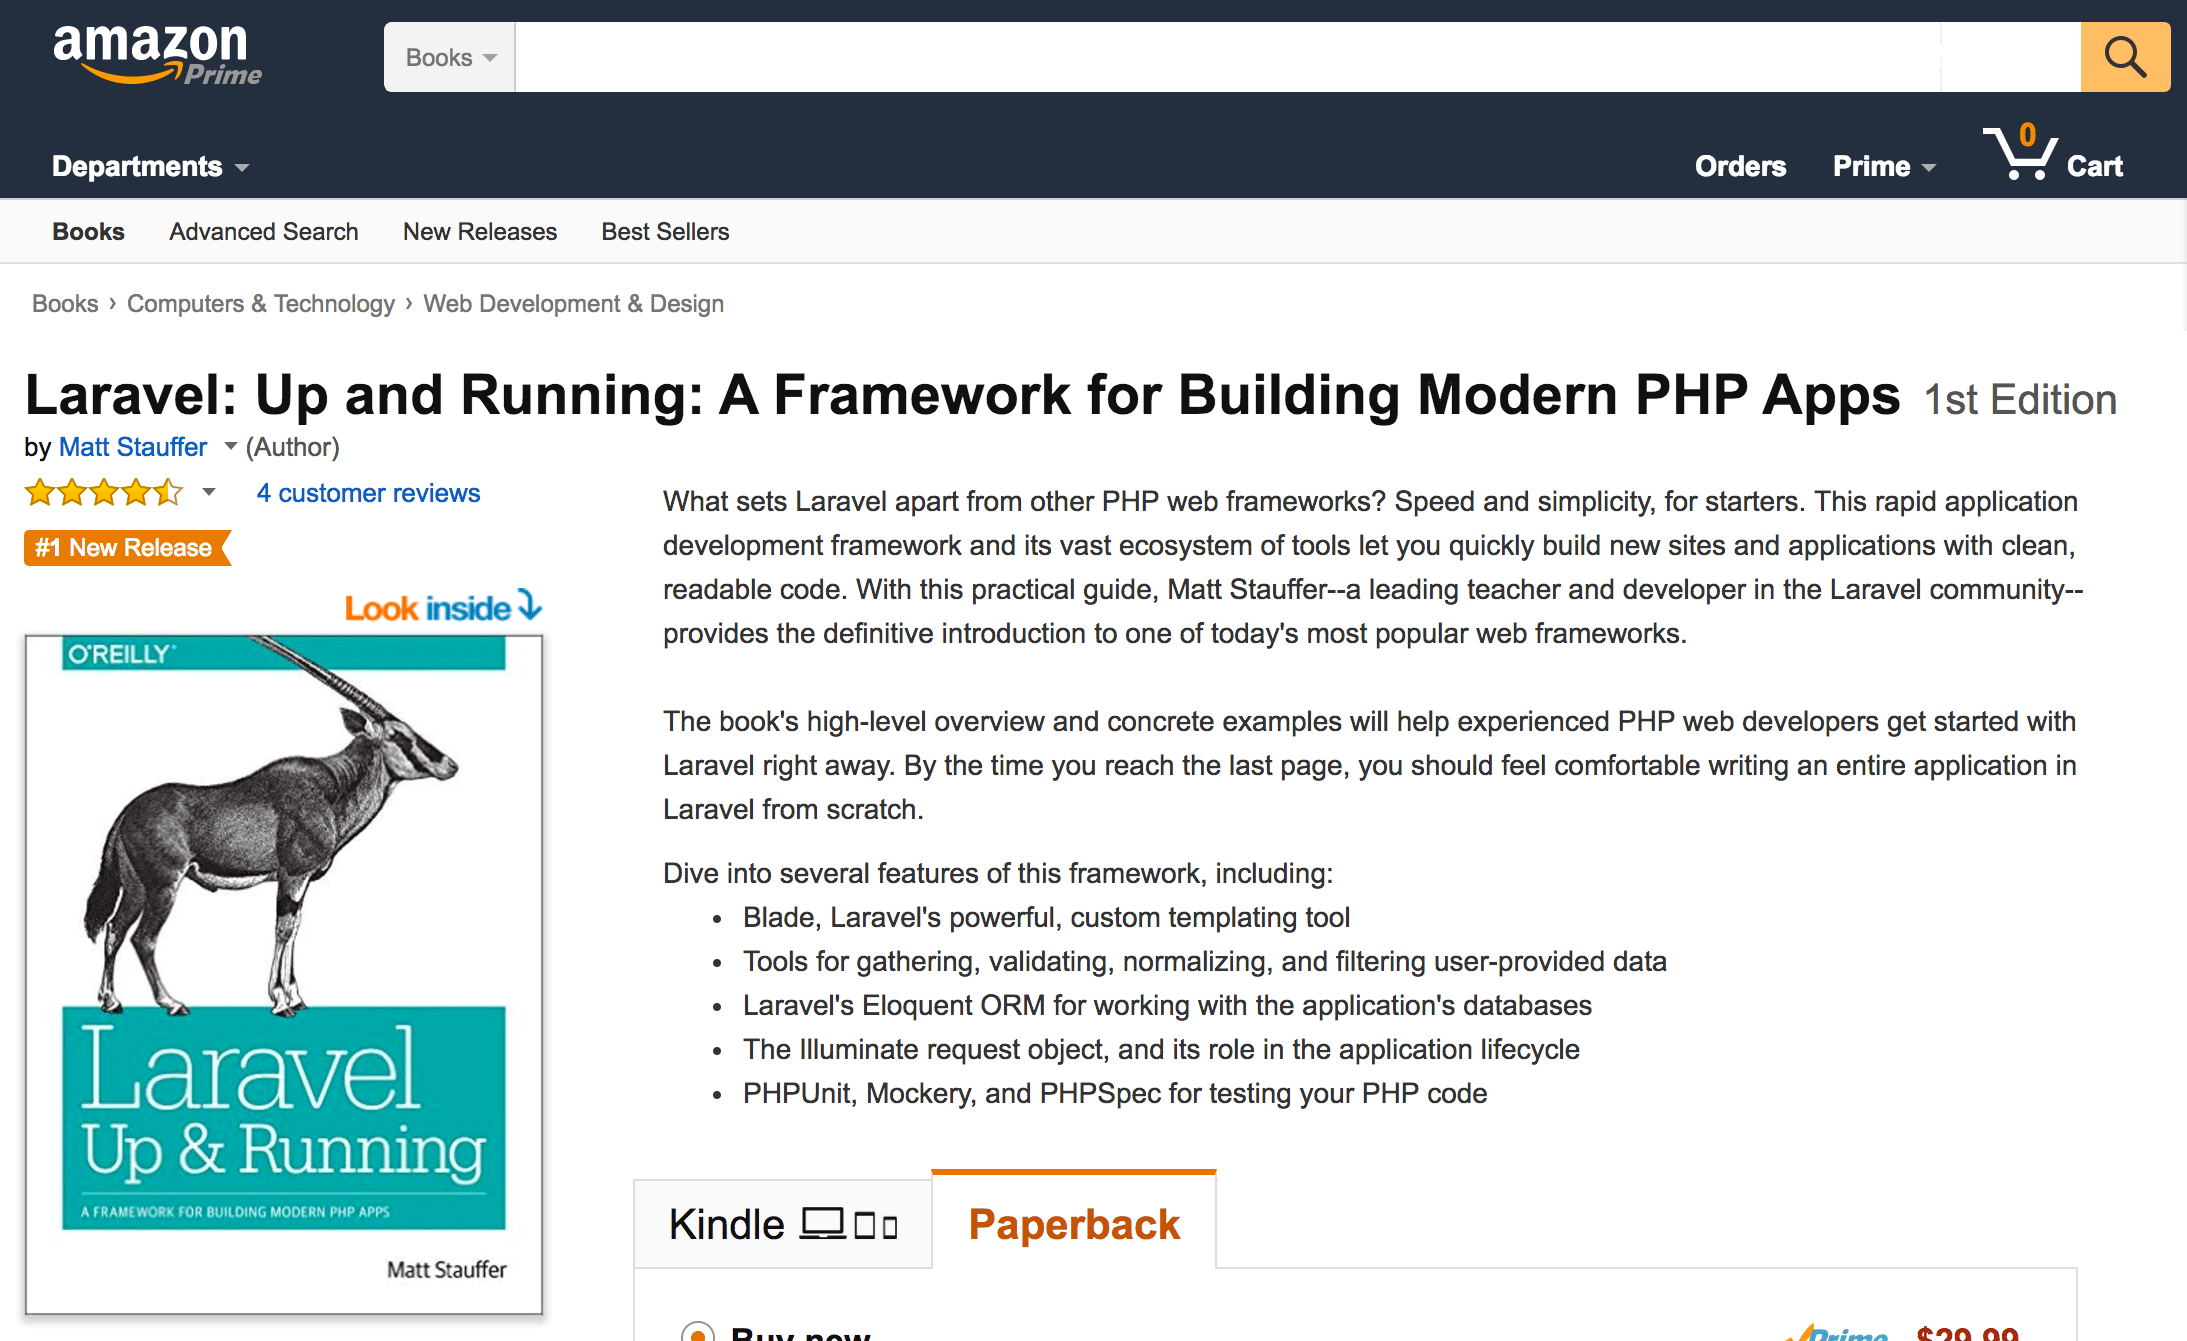 Laravel: Up & Running on Amazon  - lur on amazon - Laravel: Up & Running is launched and available for order!